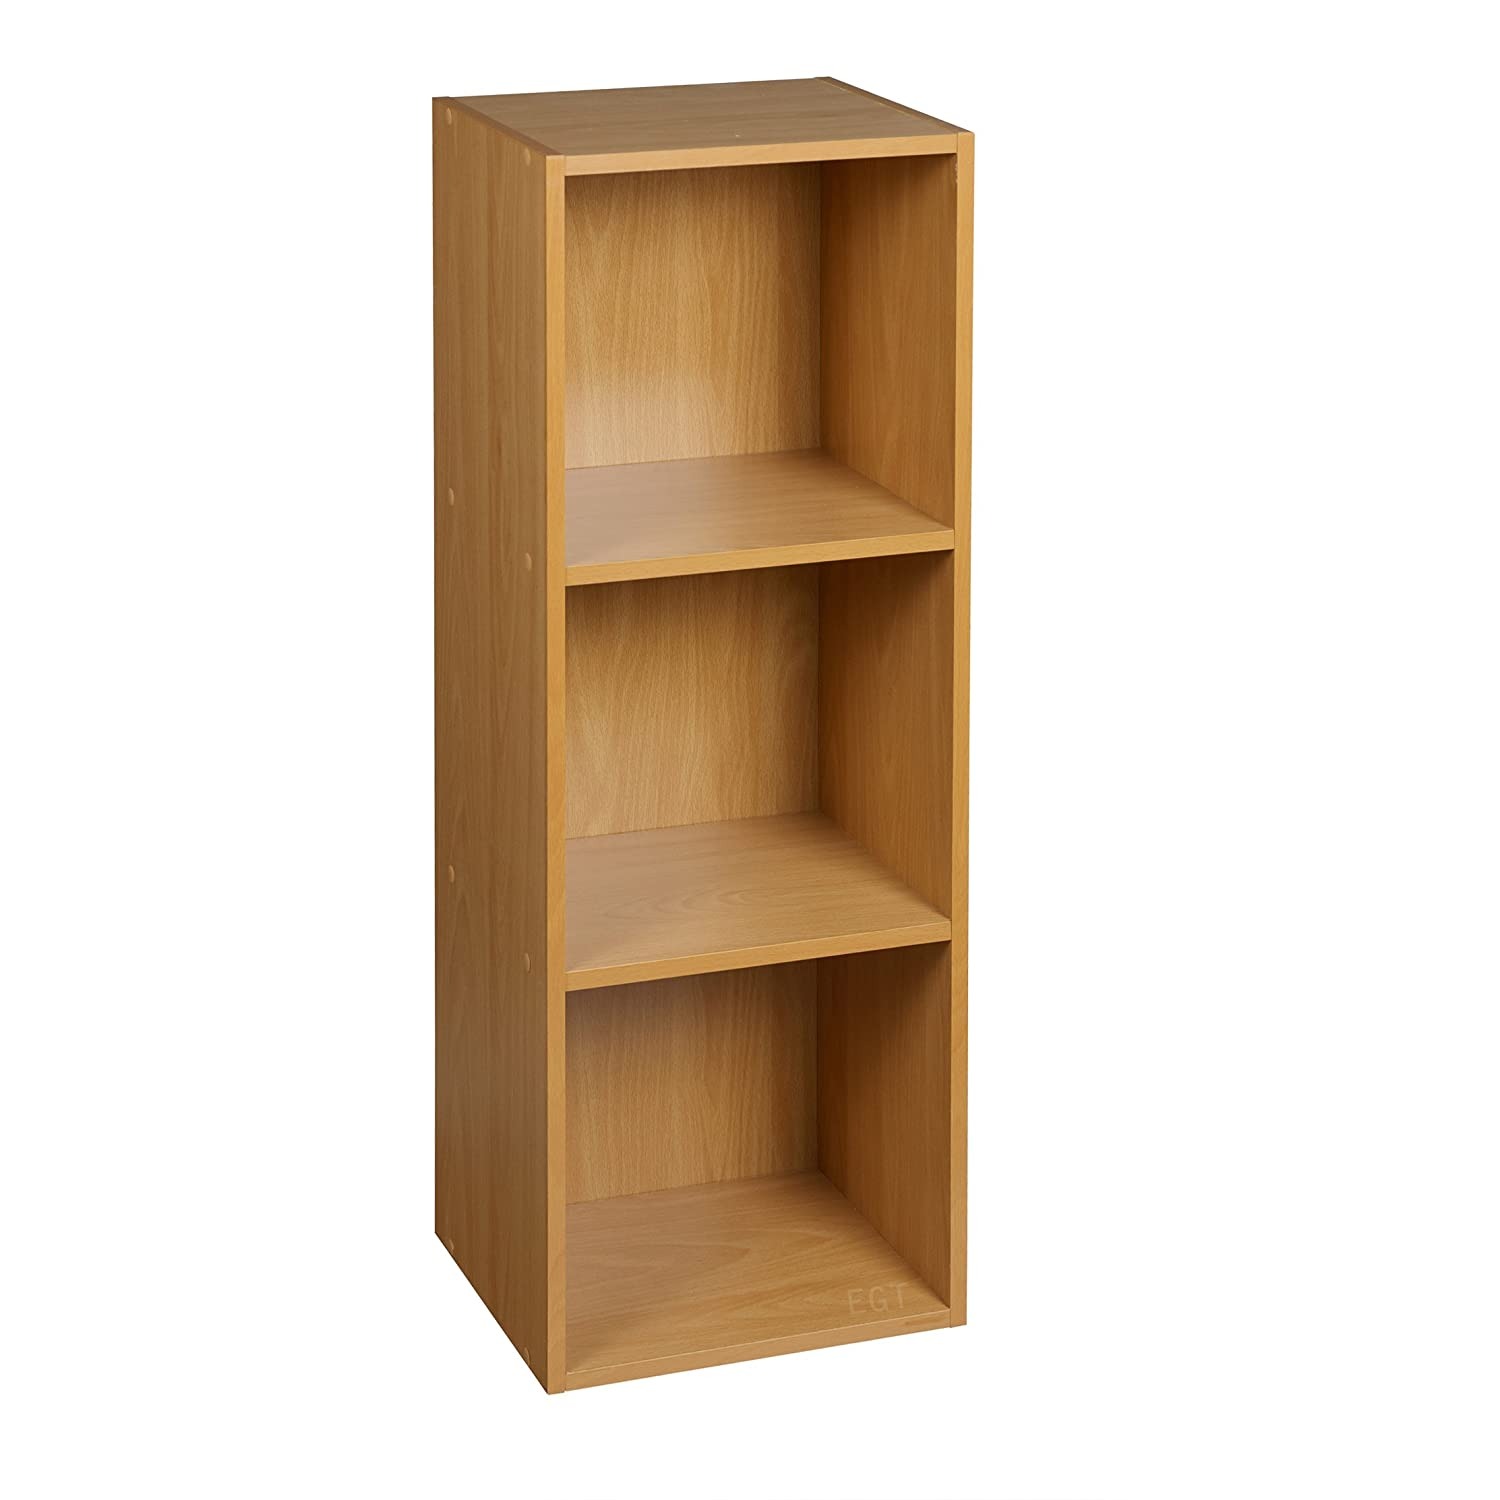 URBN LIVING 1, 2, 3, 4 Tier Wooden Shelving Bookcase Storage Wood Shelf Unit (3 Tier, Beech) URBN LIVING ®